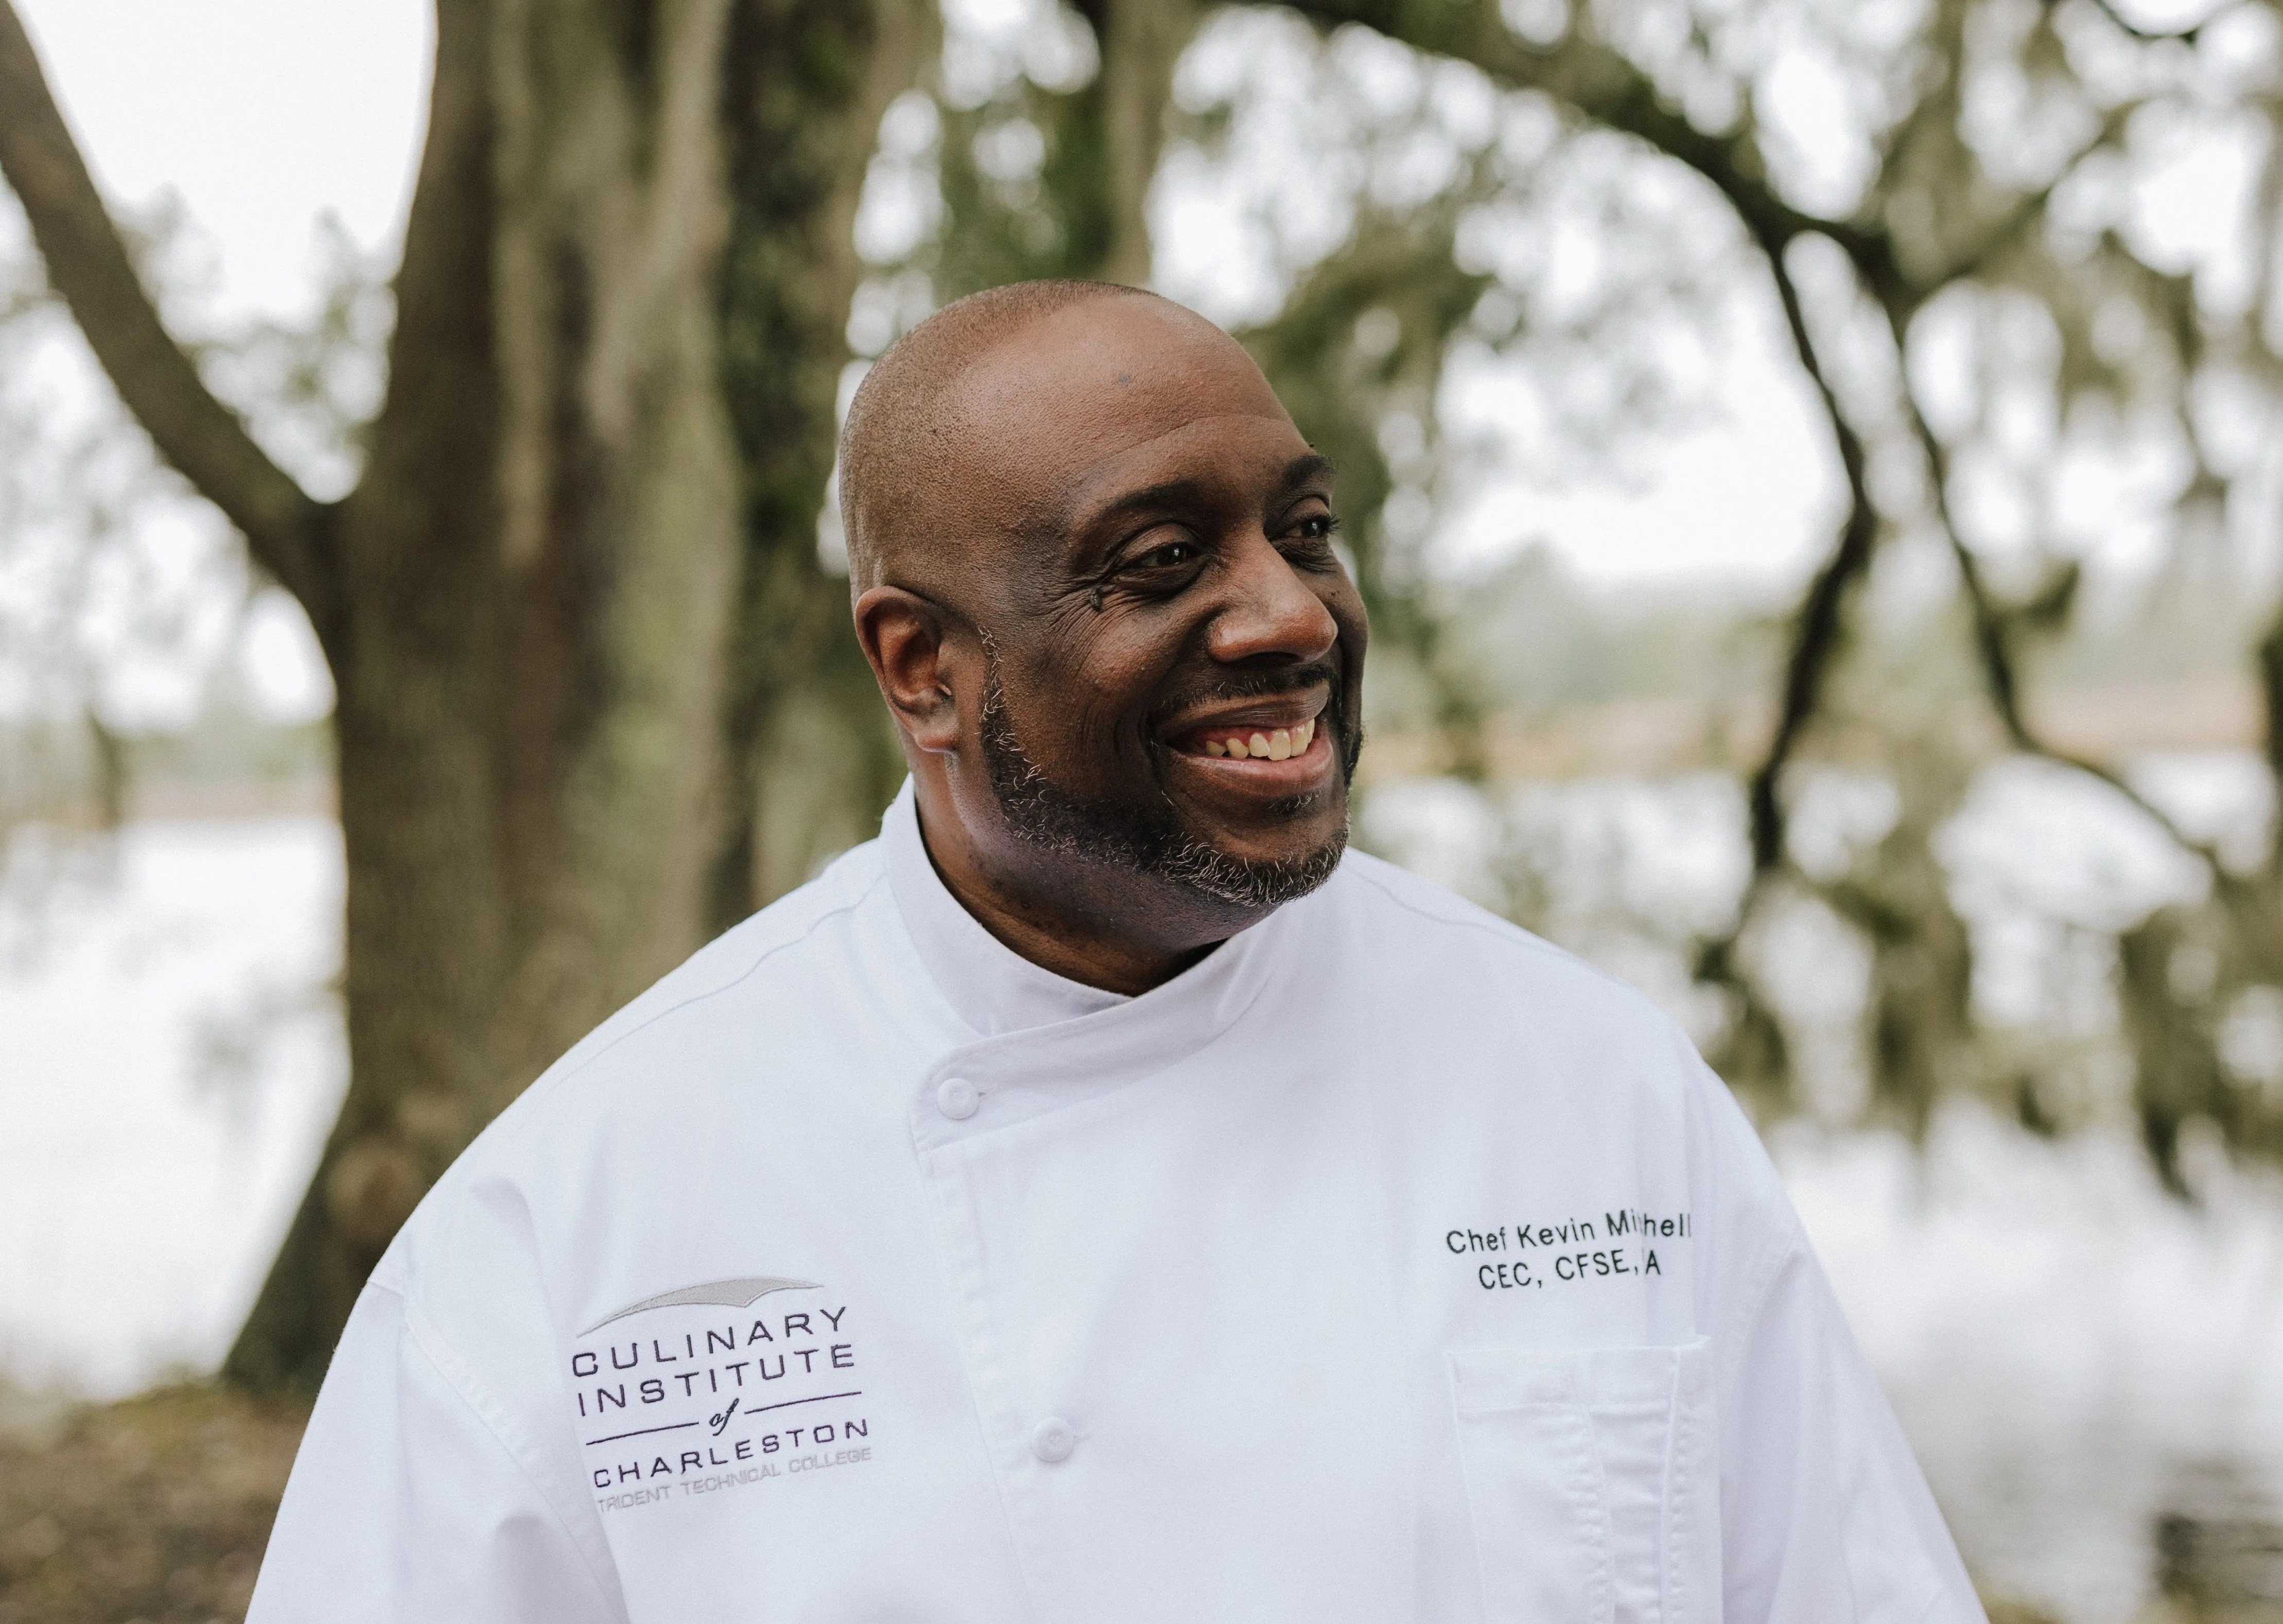 """Chef and culinary instructor Kevin Mitchell collaborated with historian David S. Shields to write """"Taste the State,"""" a guide to the food of South Carolina. (Courtesy of University of South Carolina Press)"""